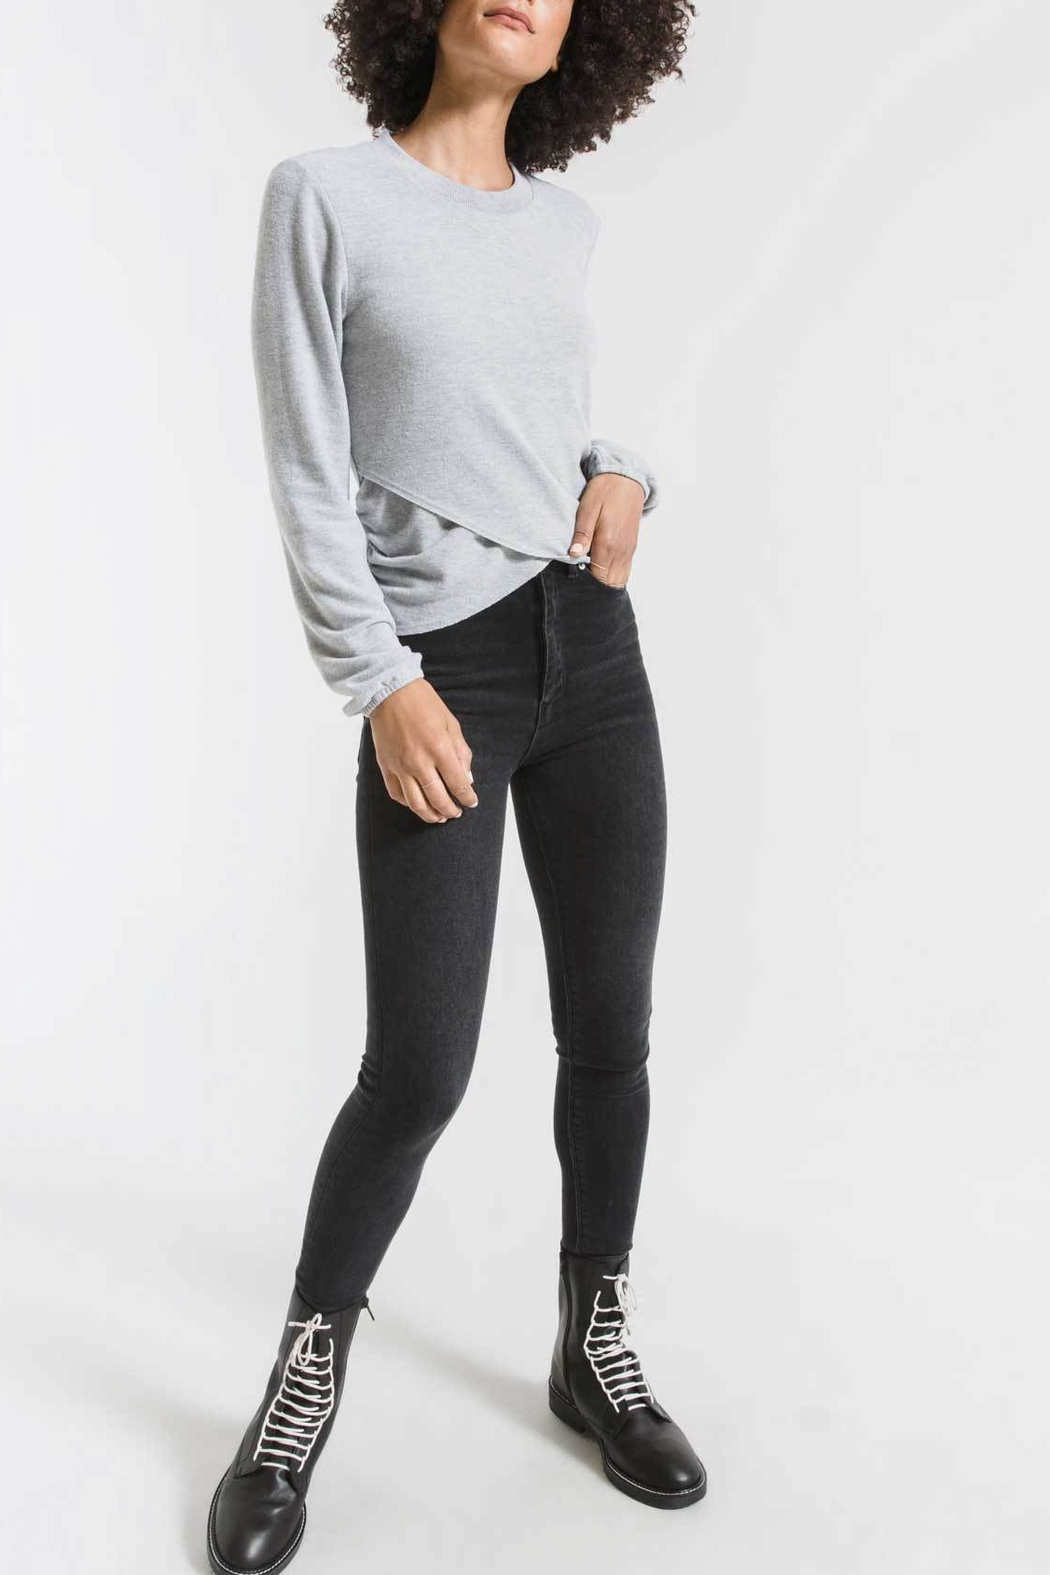 z supply Soft Spun Ruched Long Sleeve Top - Main Image